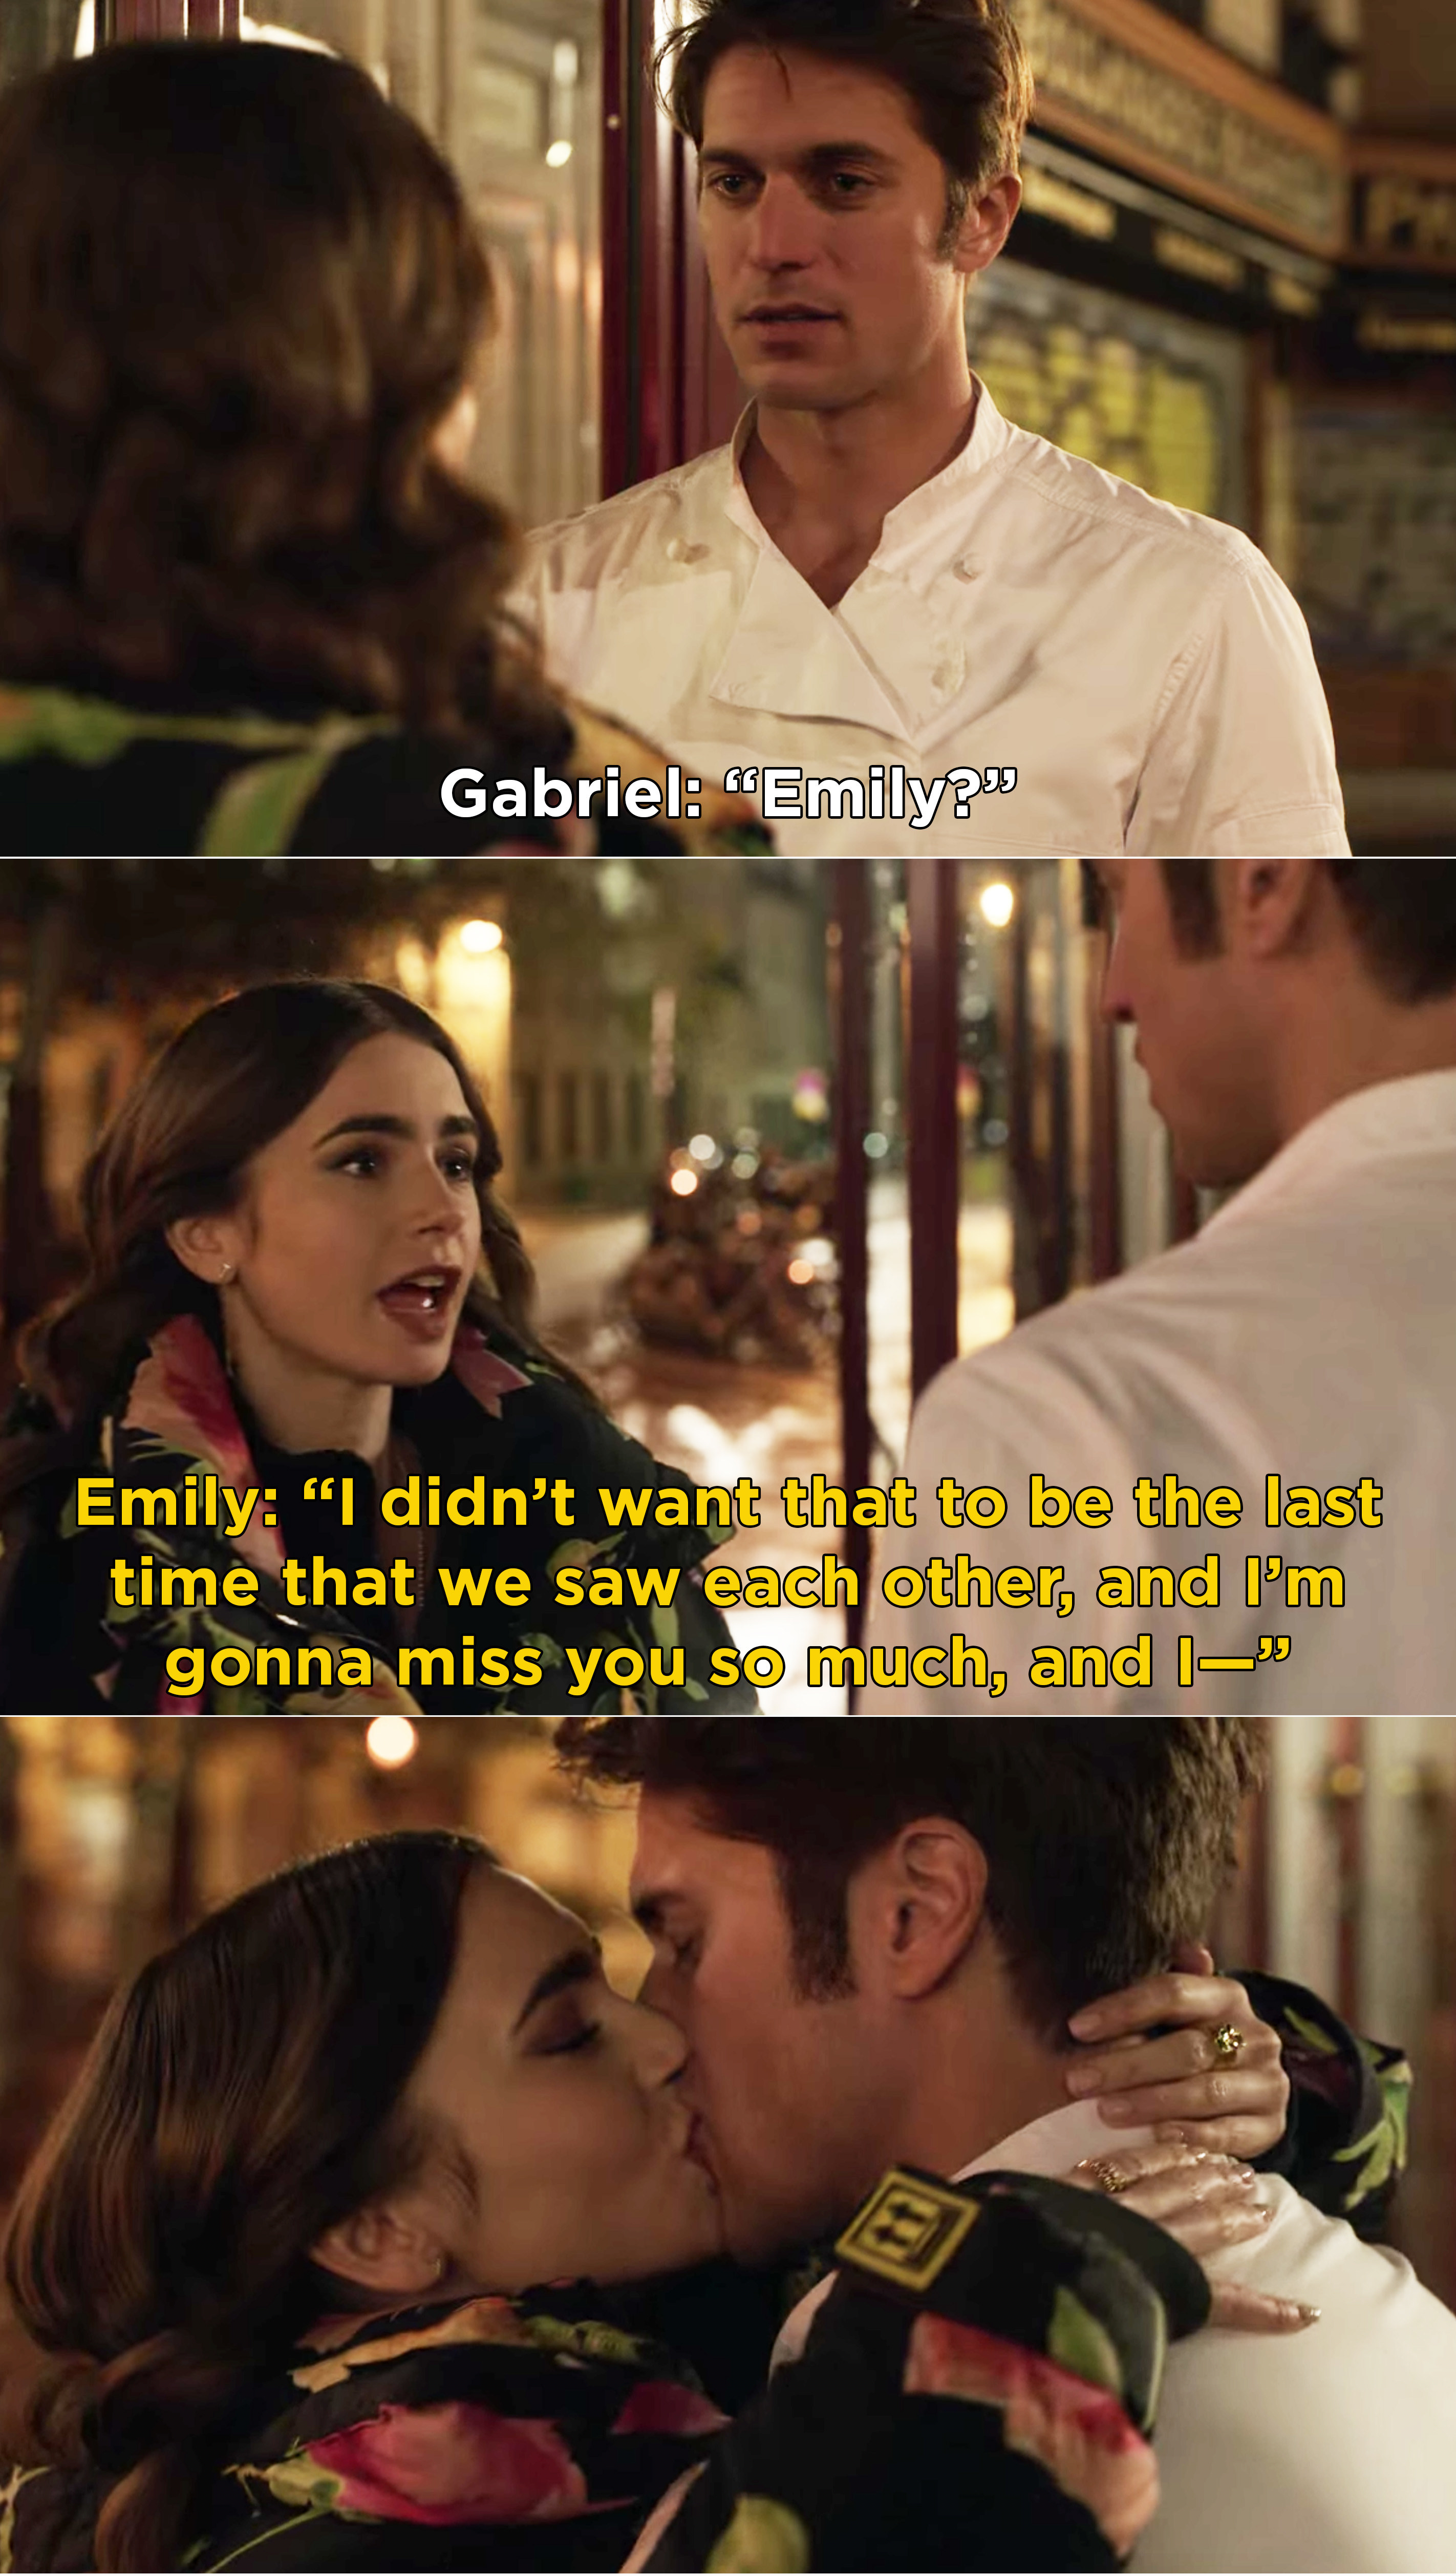 Emily saying to Gabriel that she is going to miss him a lot and then they kiss